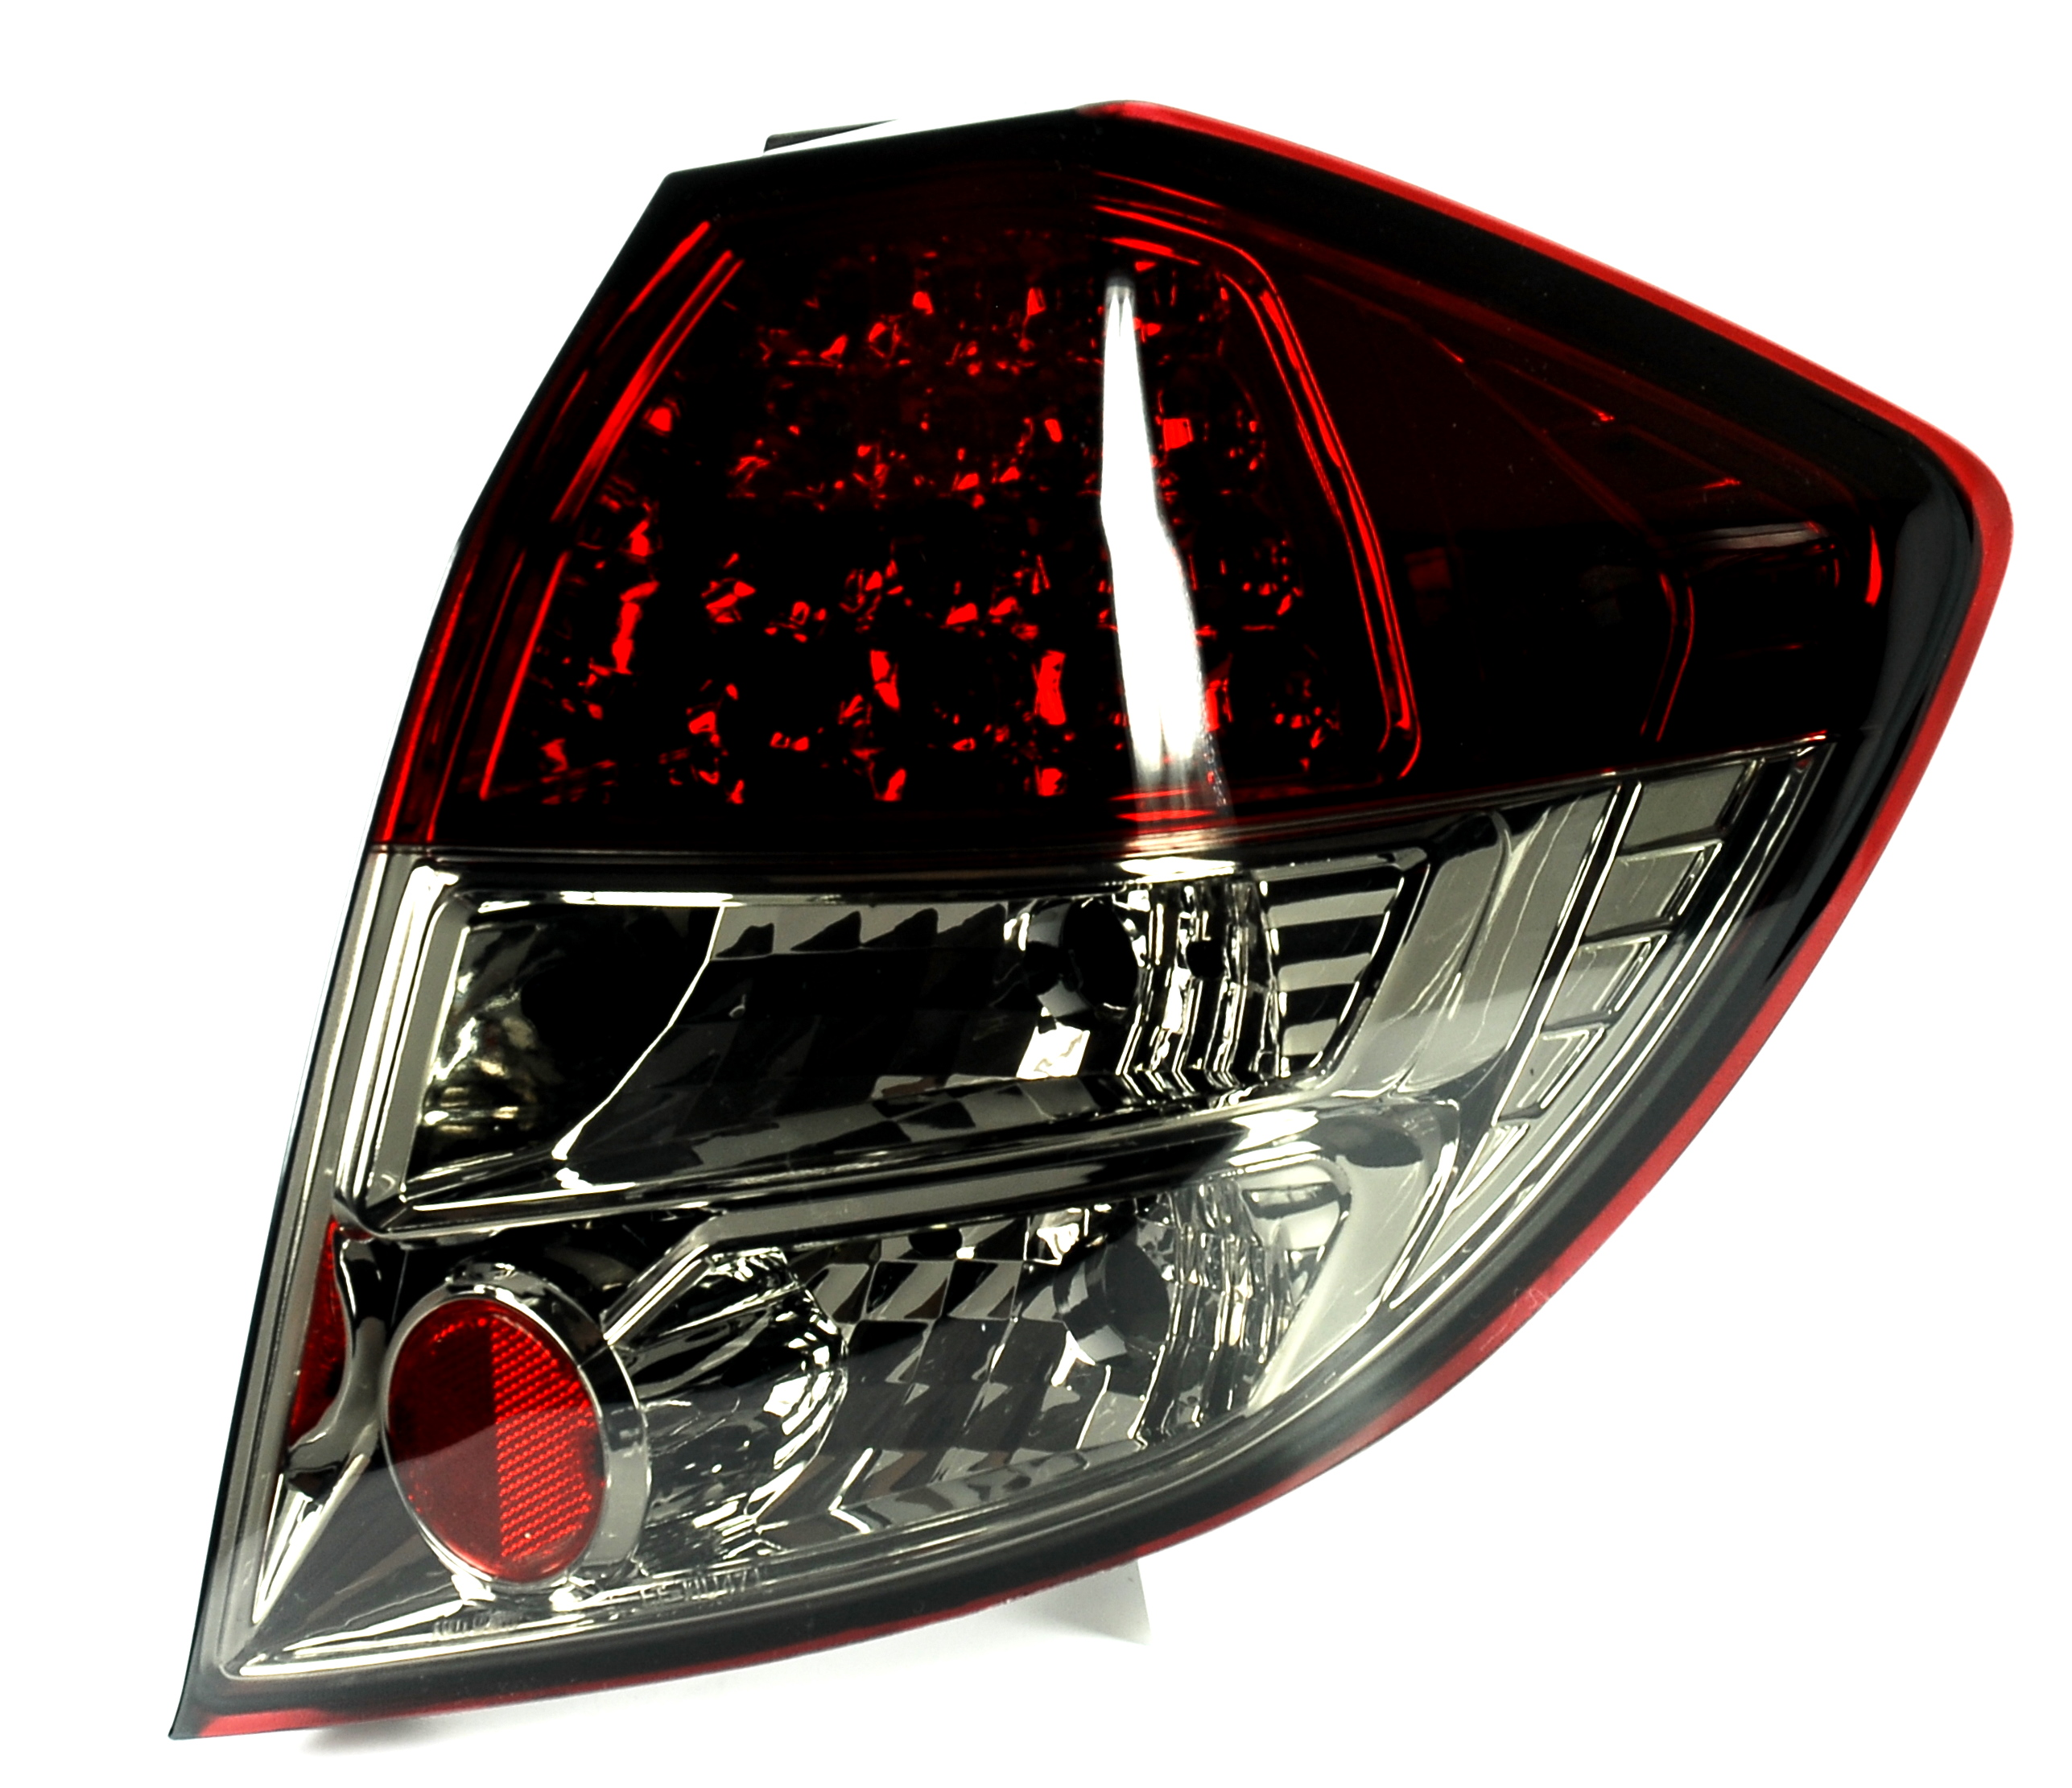 Rear Lights - Upgrades